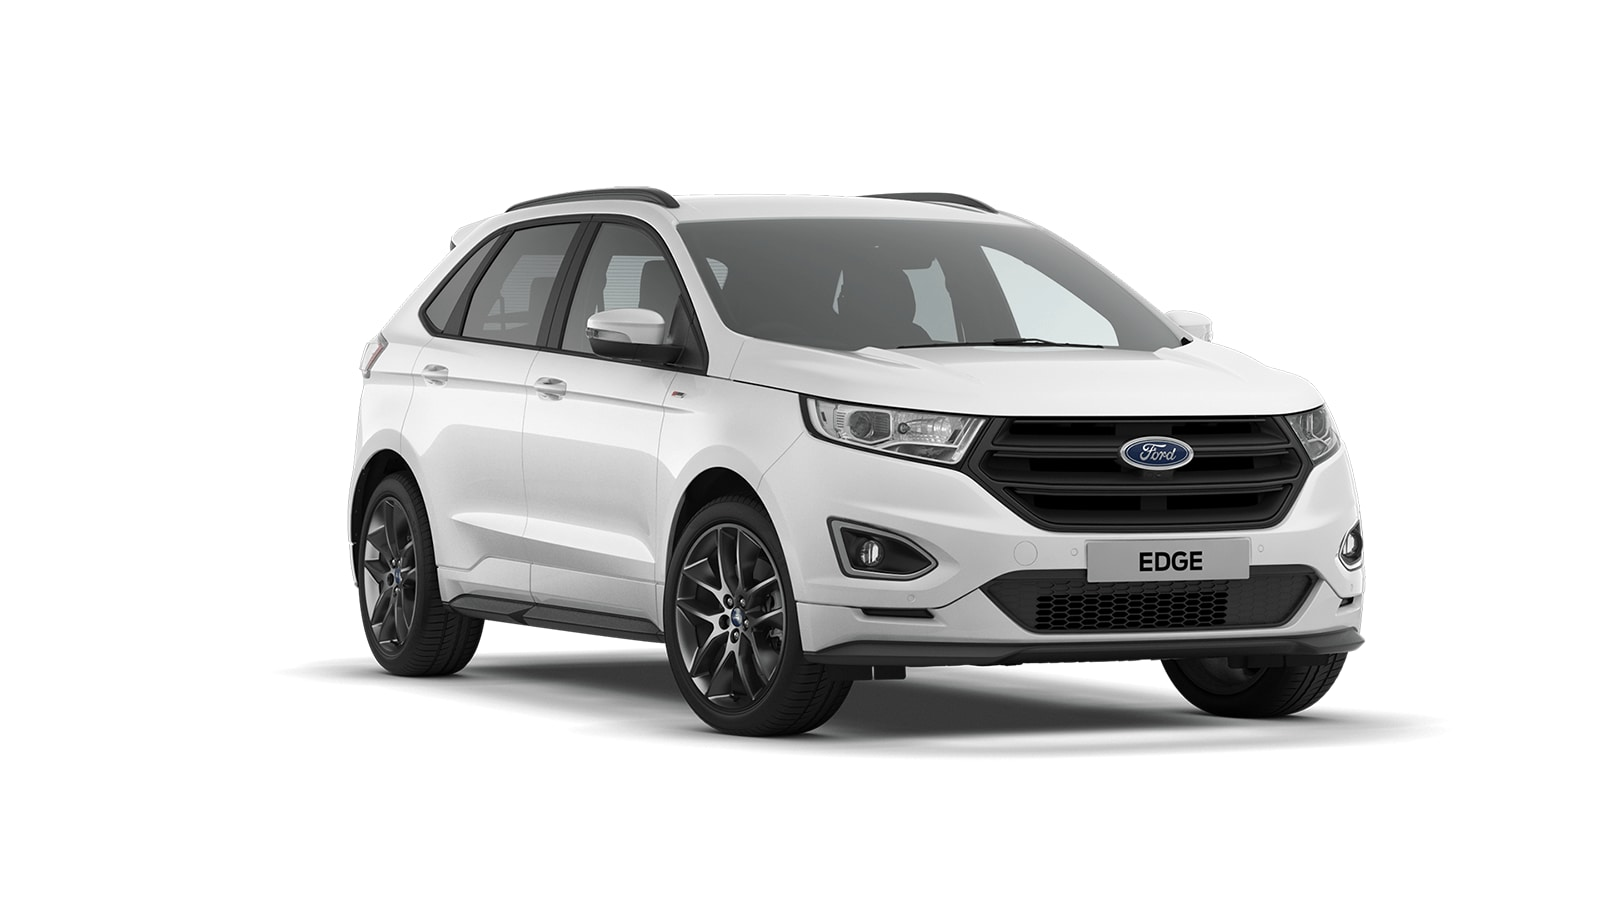 Ford Edge Luxury Suv Ford Uk